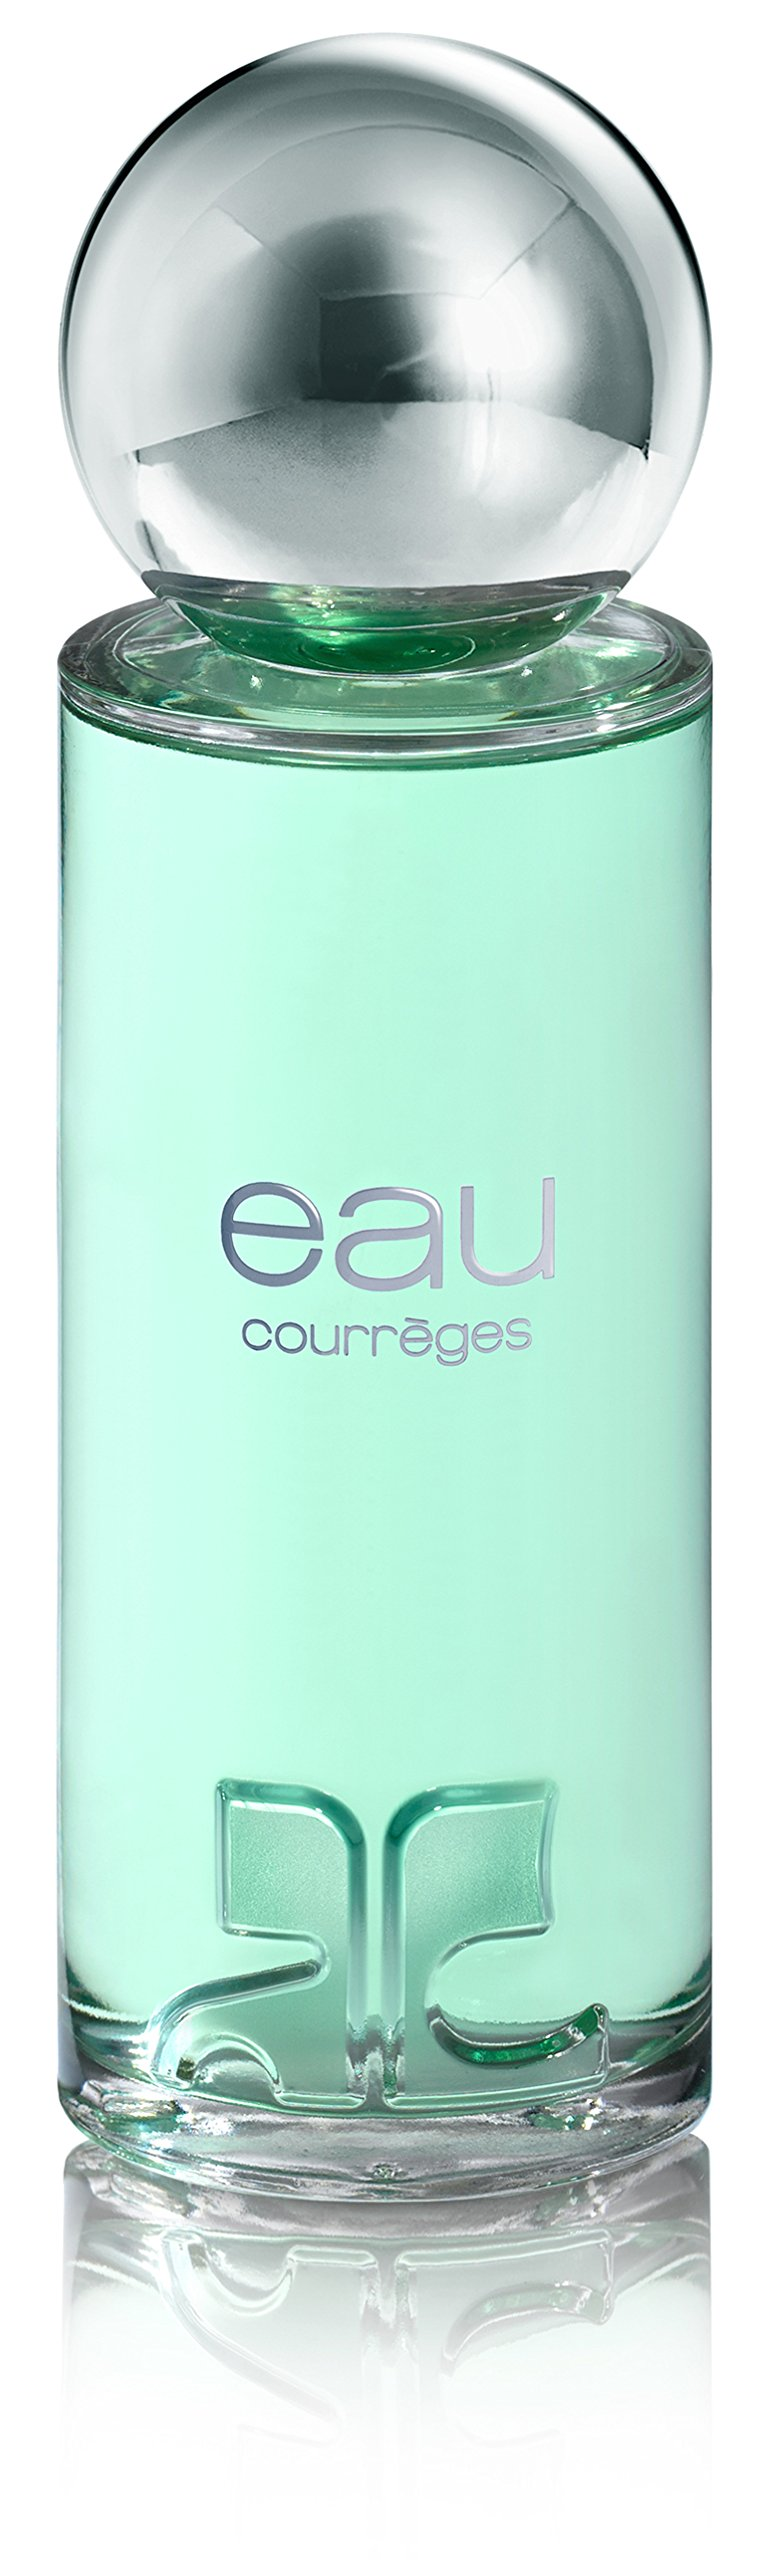 Courreges 45543 - Agua de Colonia para Mujeres, 90 ml product image